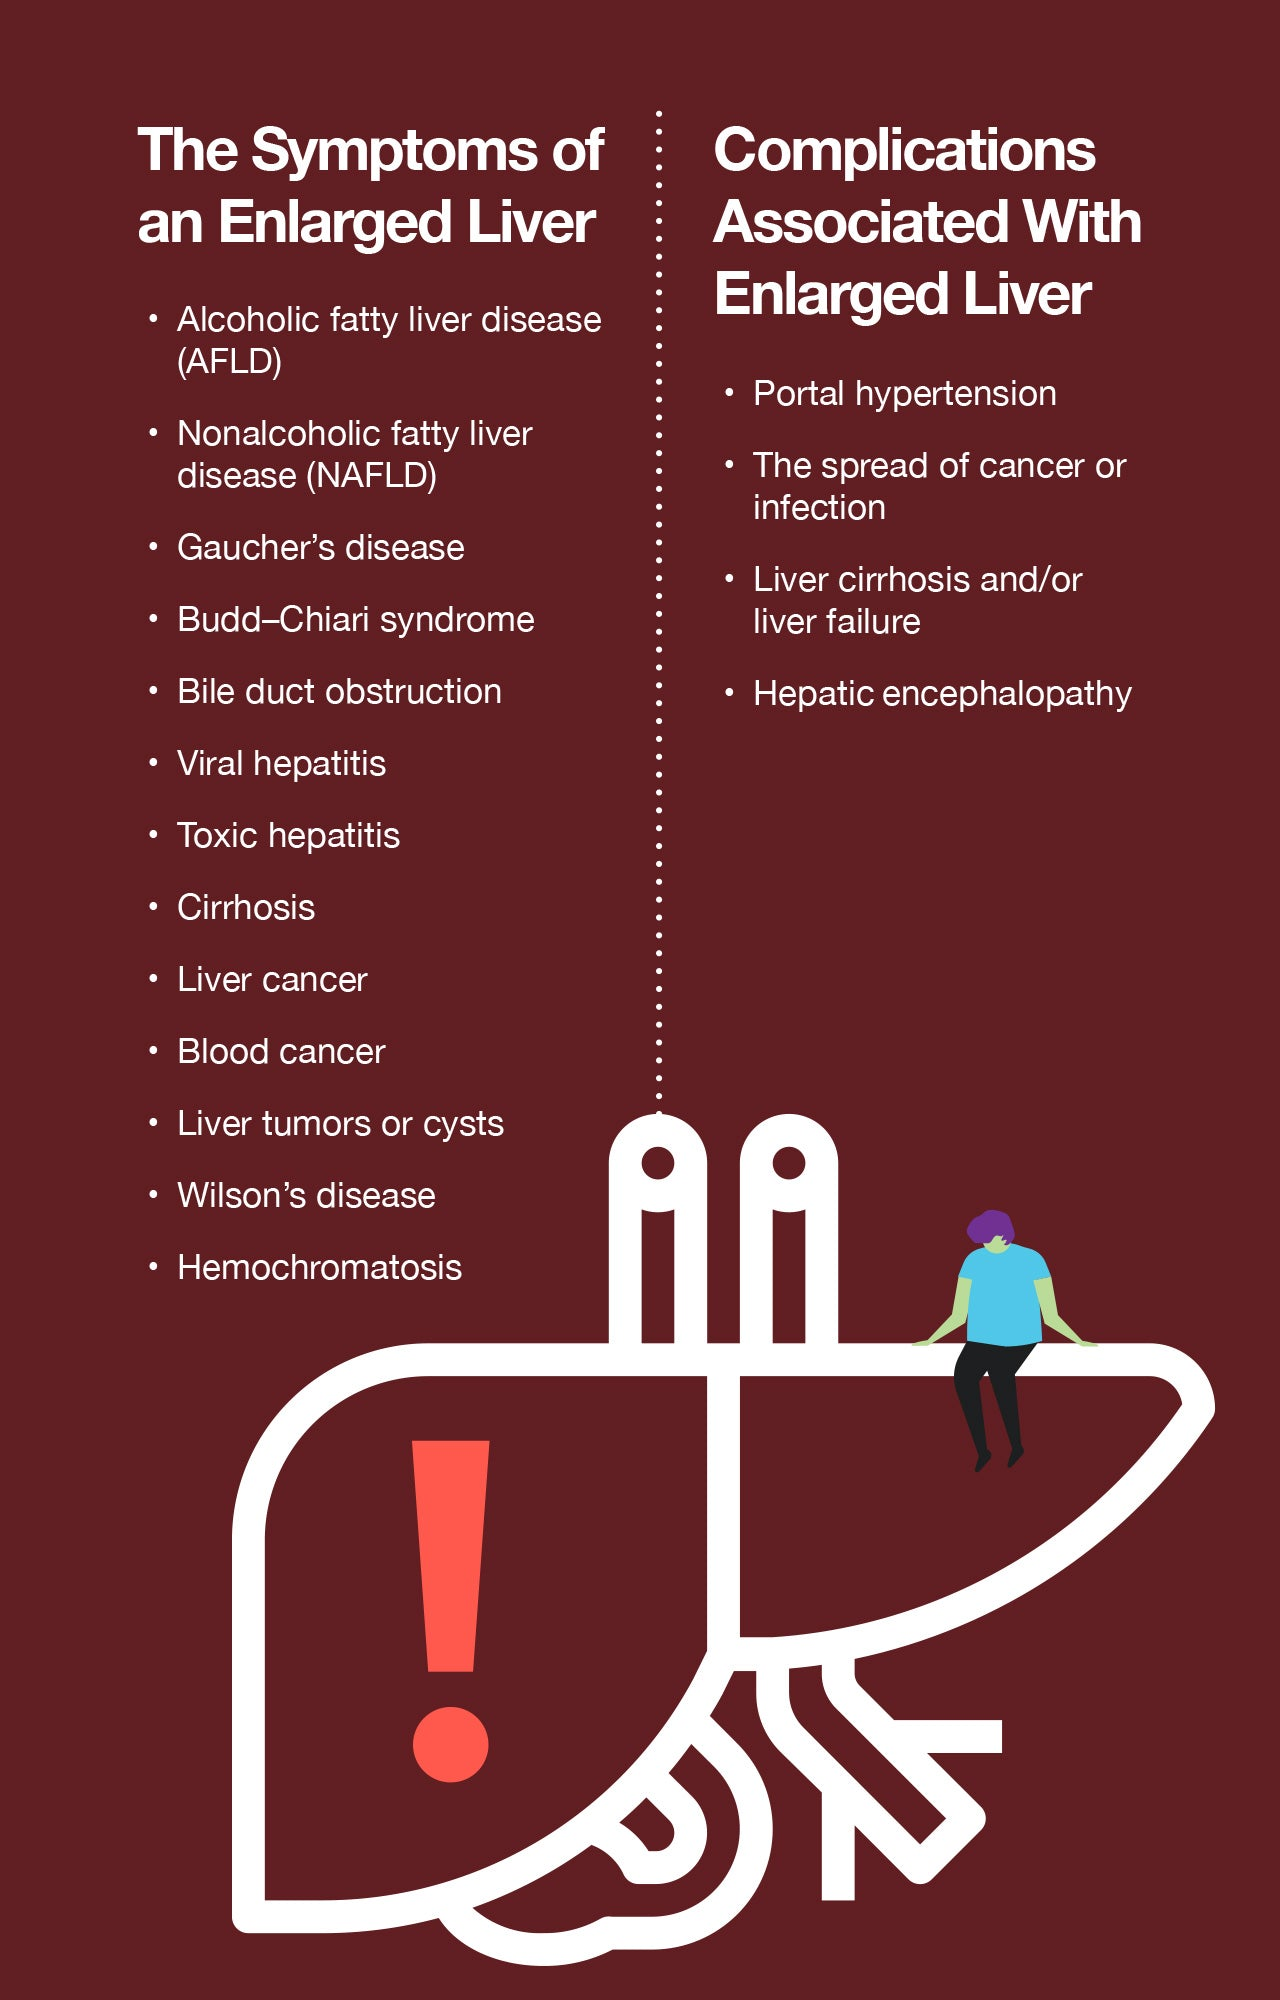 Common Causes of an Enlarged Liver